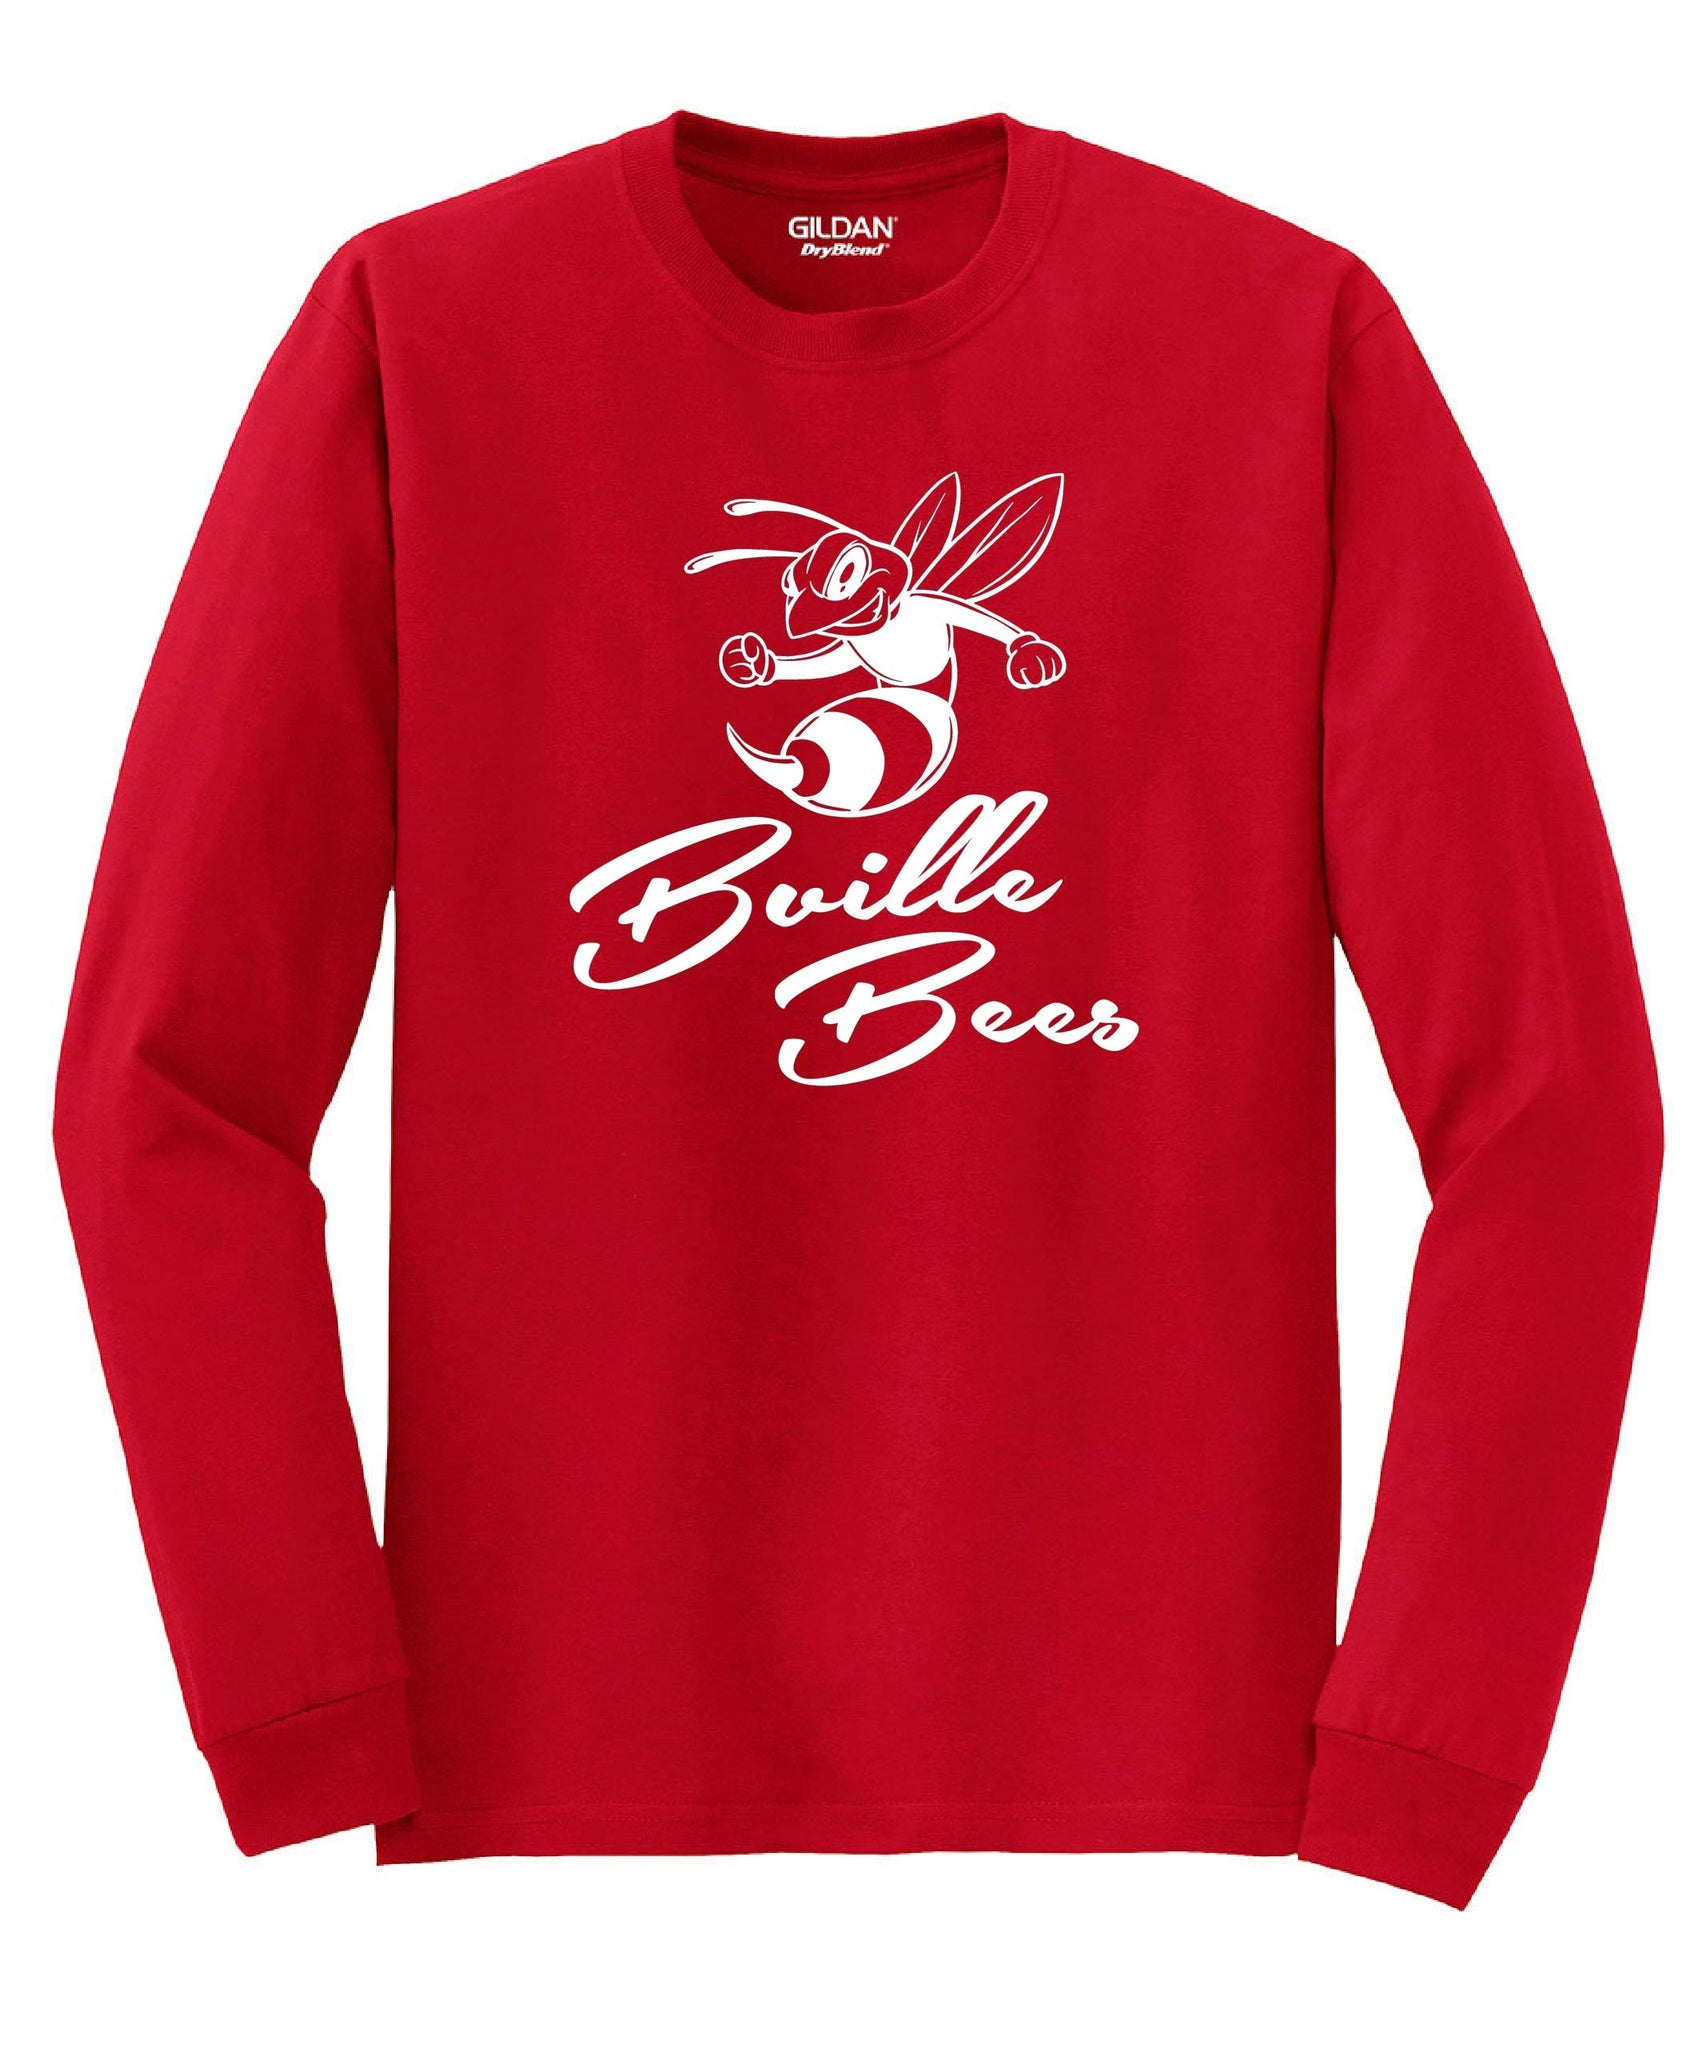 B'ville Bees Long Sleeve Tee